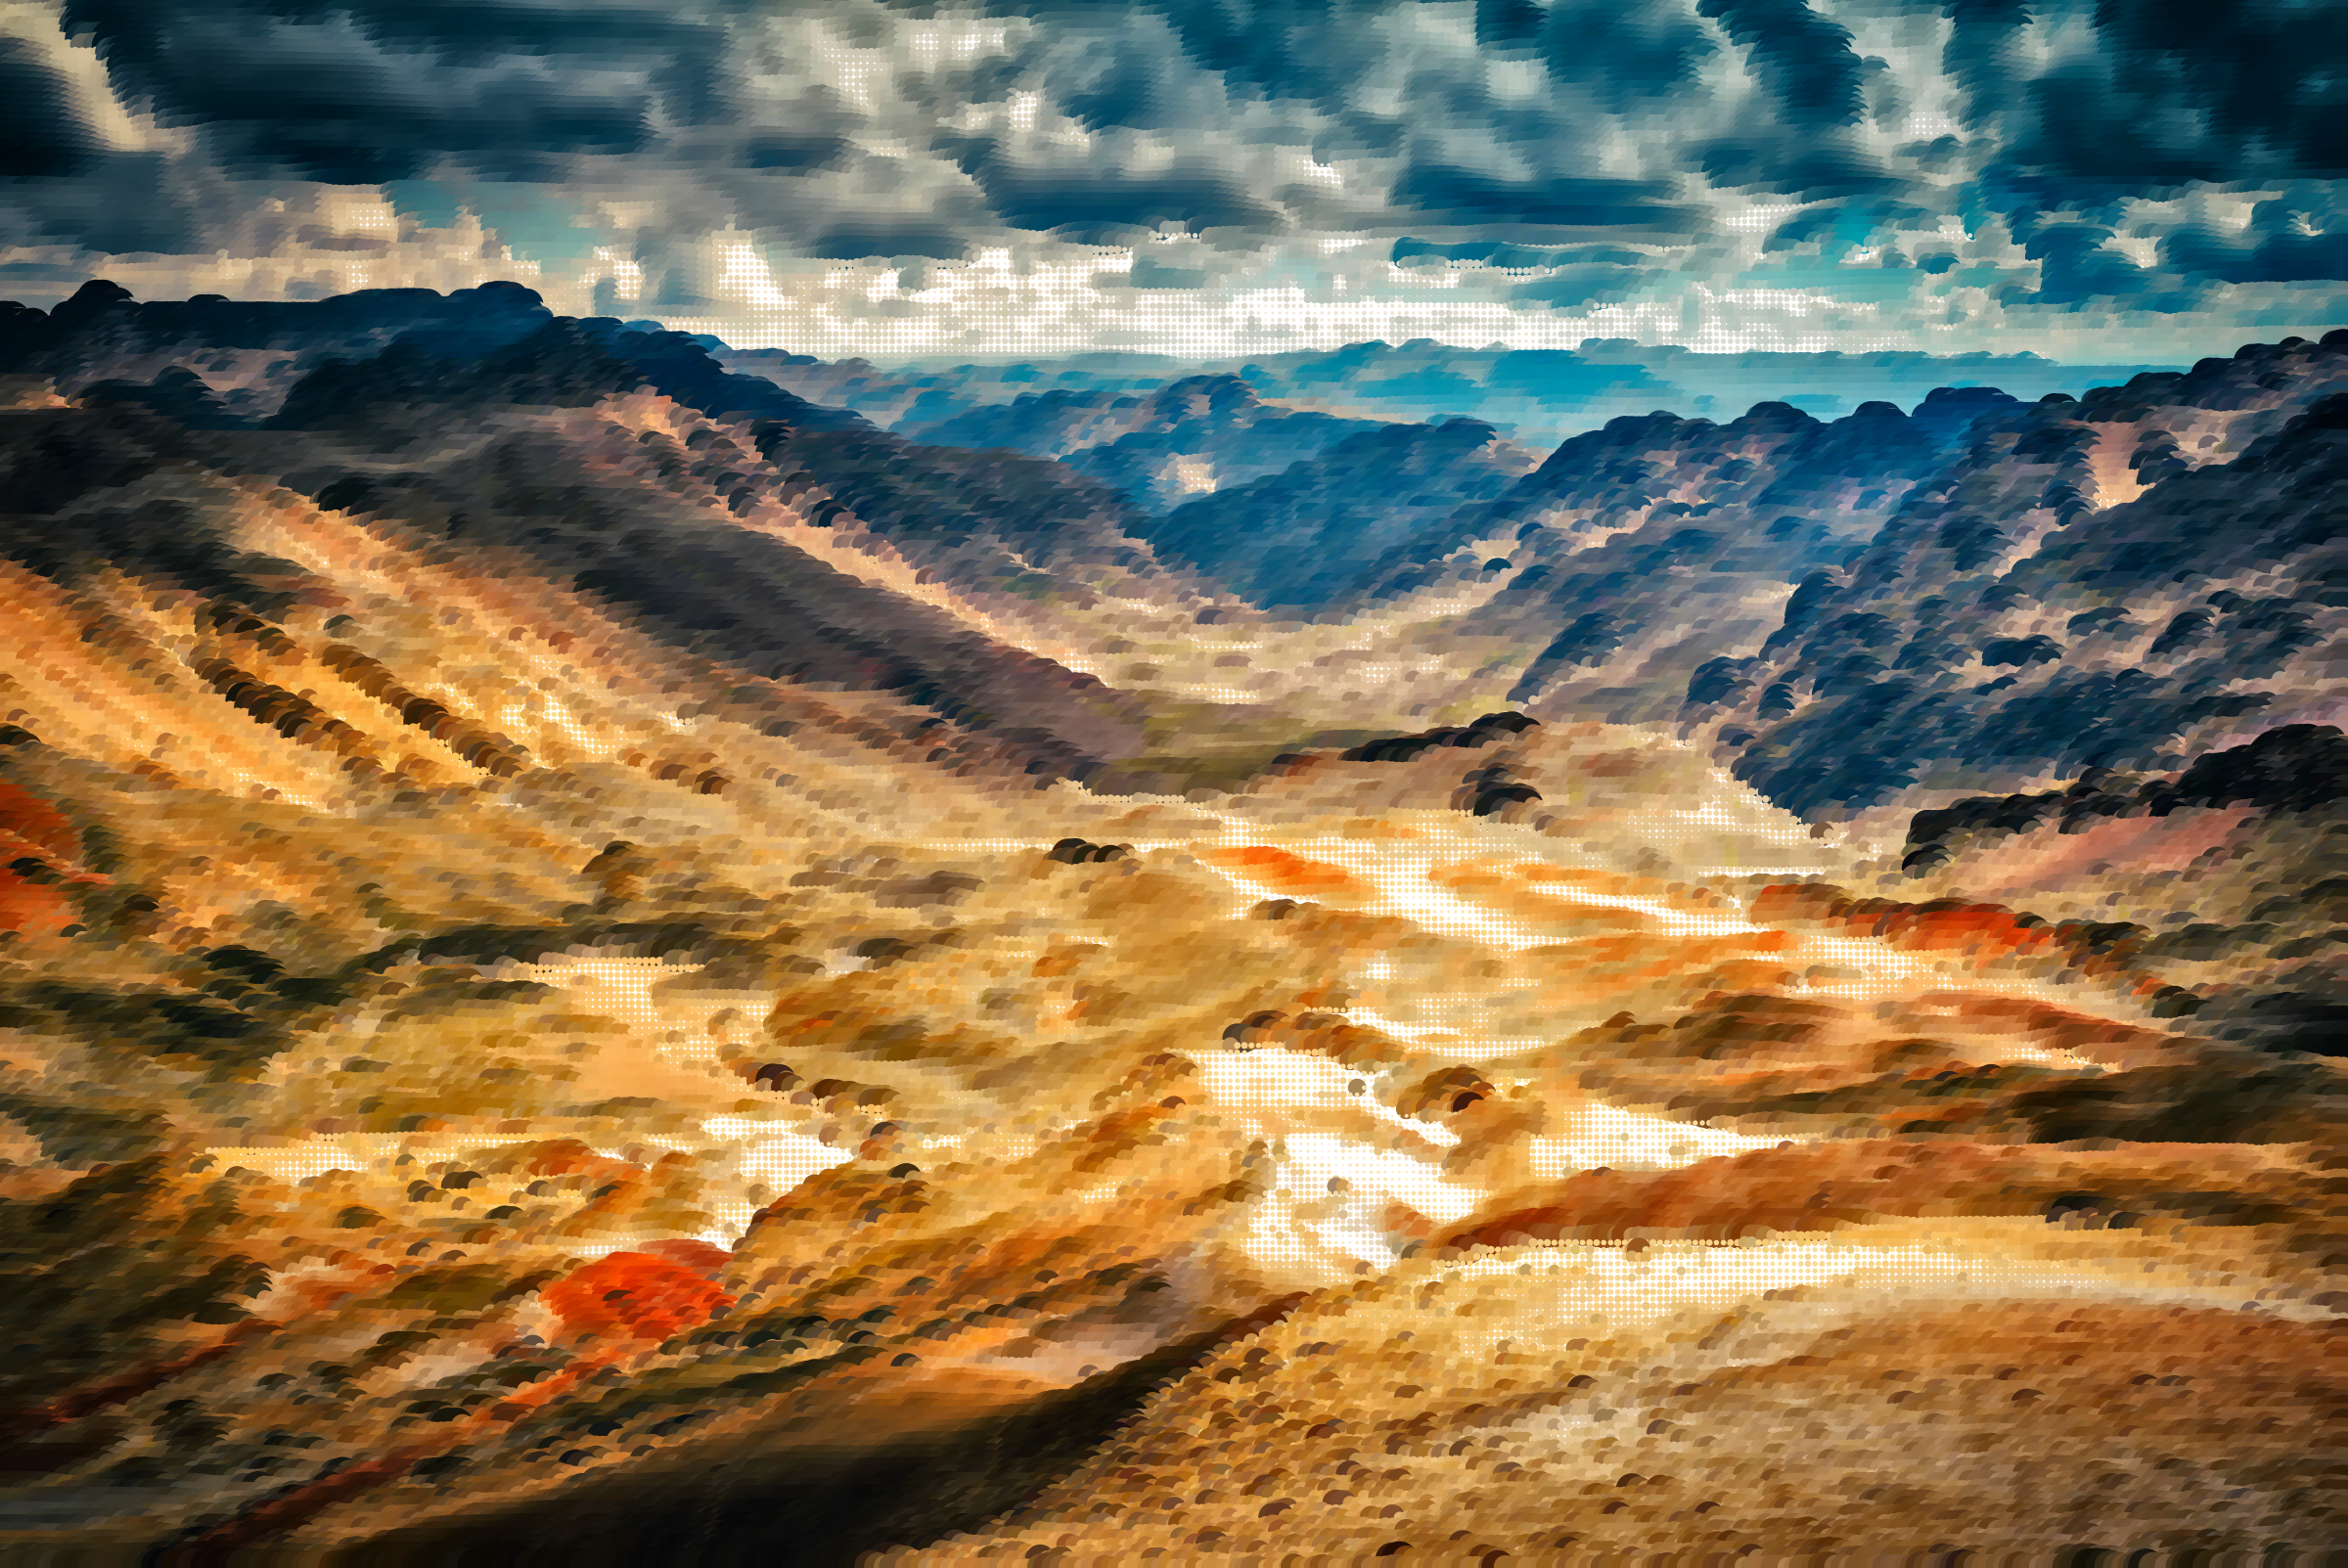 Surreal Peruvian Mountains by GDJ